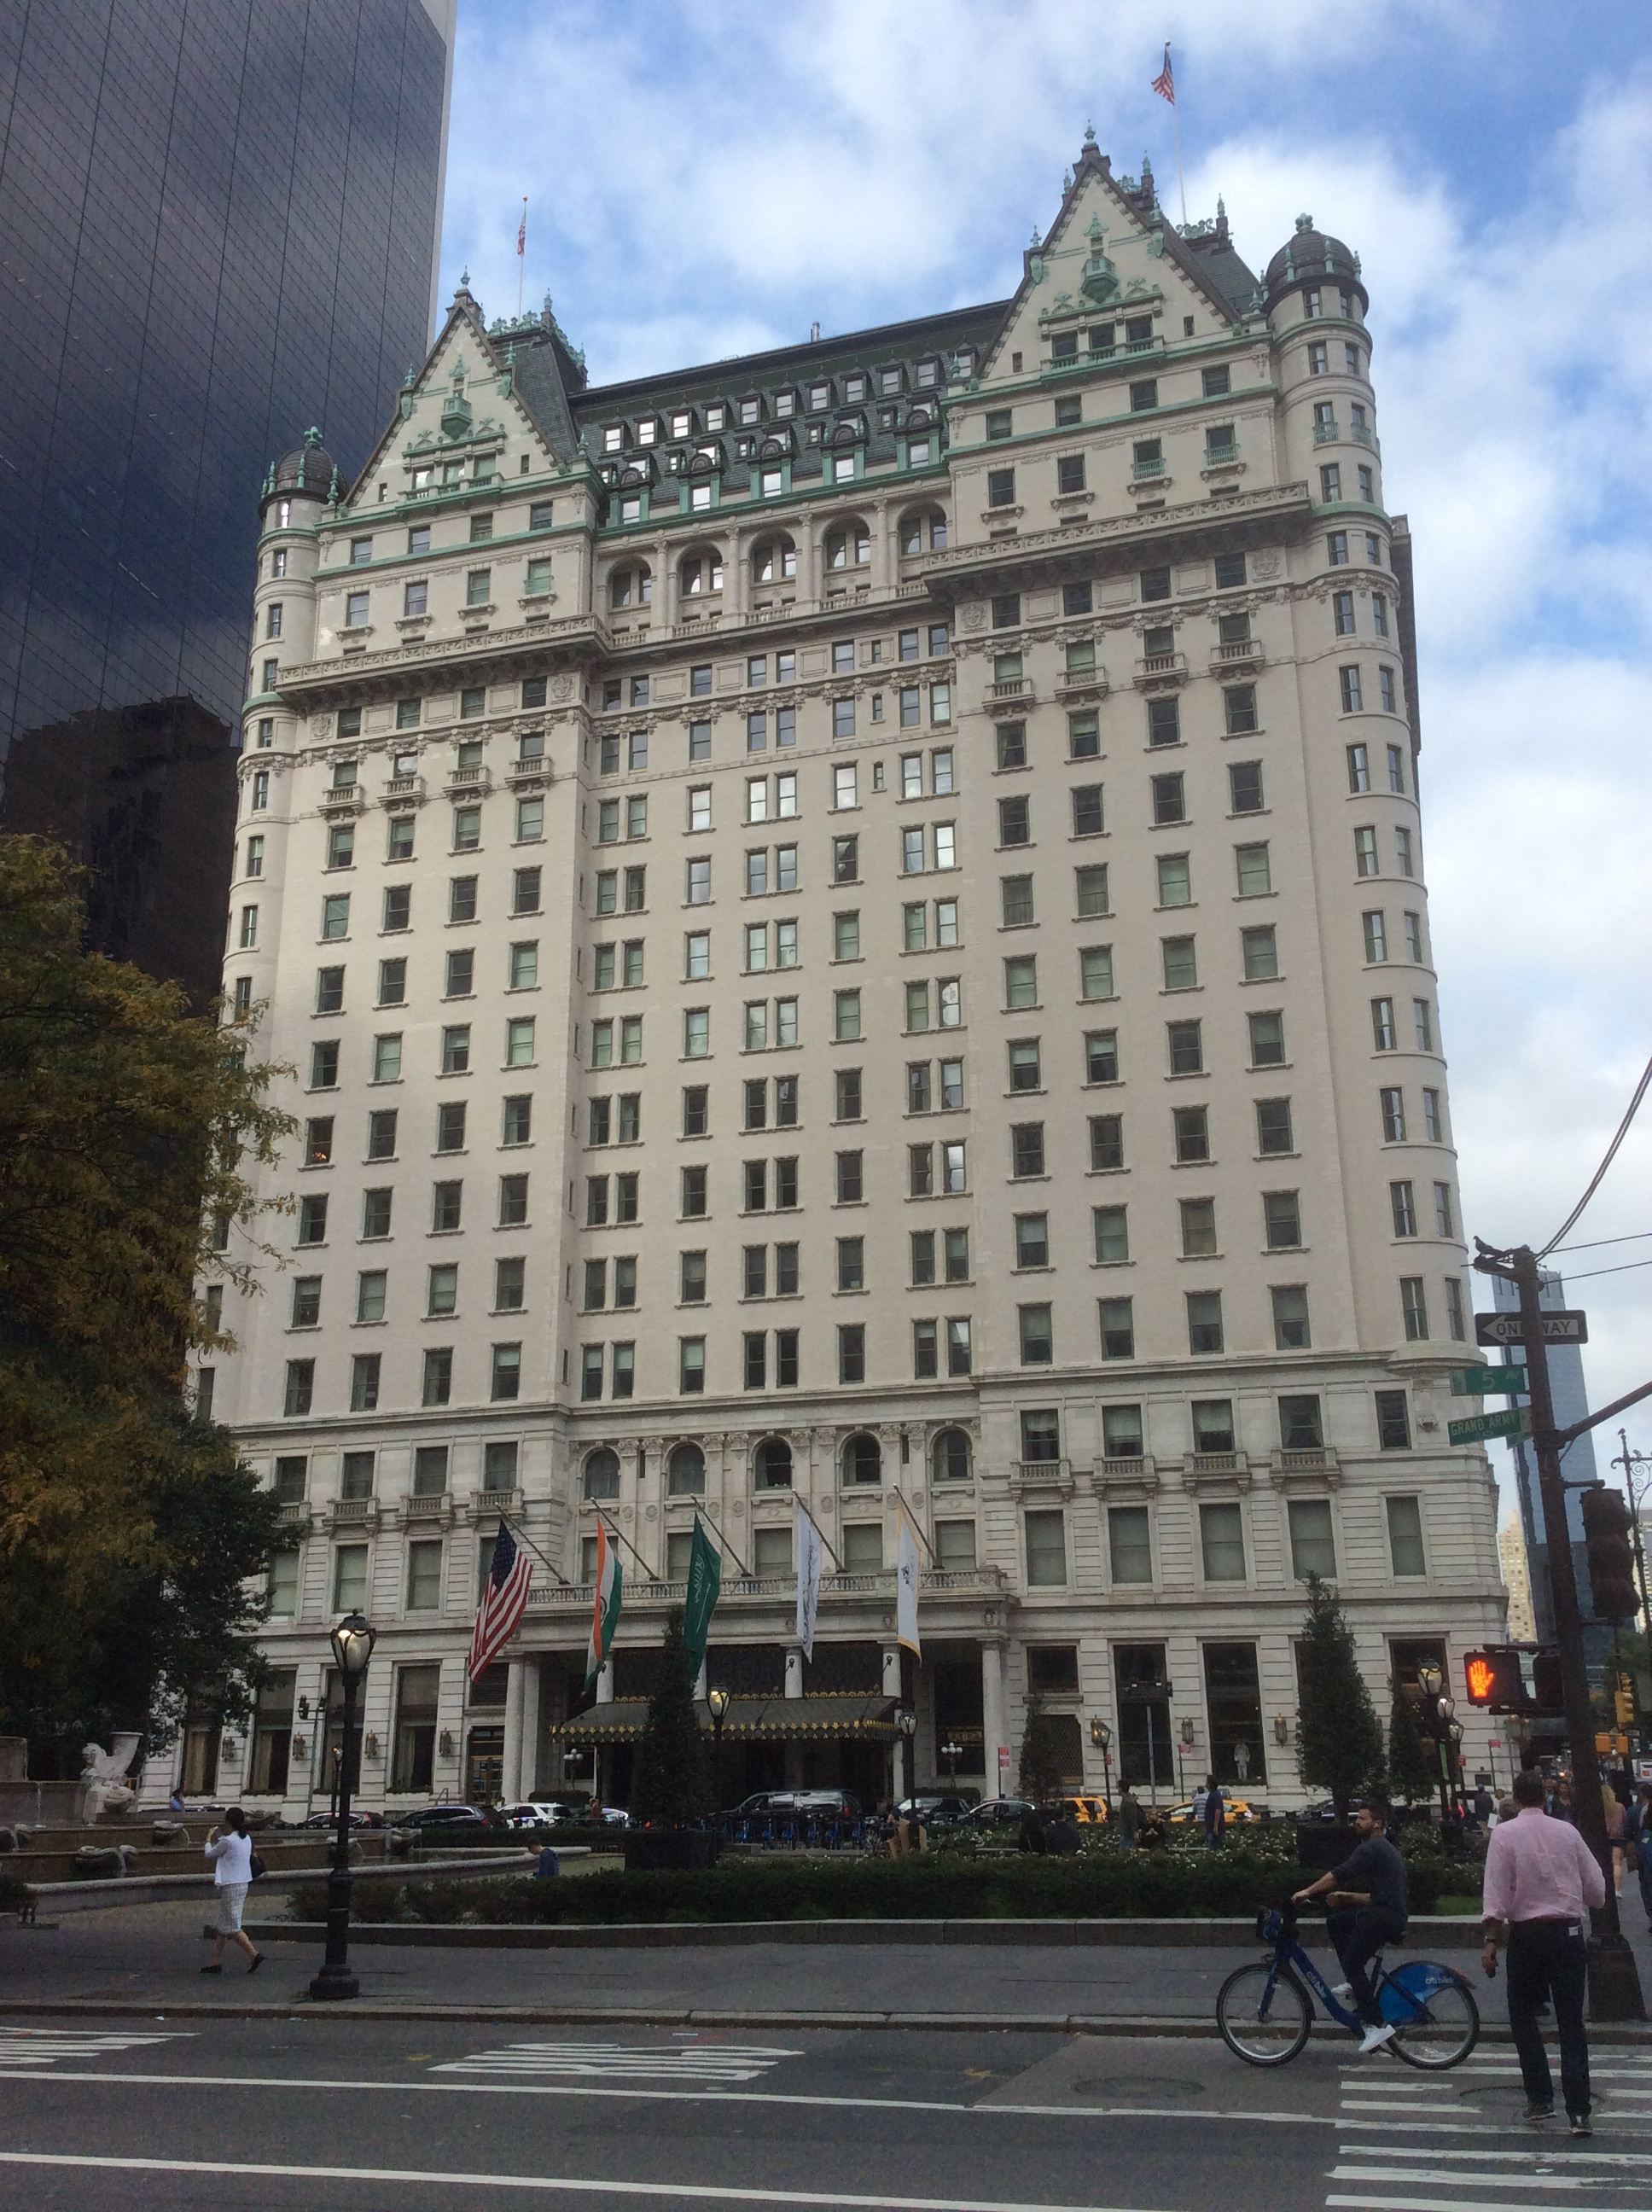 The Plaza Hotel, Manhattan, New York City, photo 2016 by Amy Cools